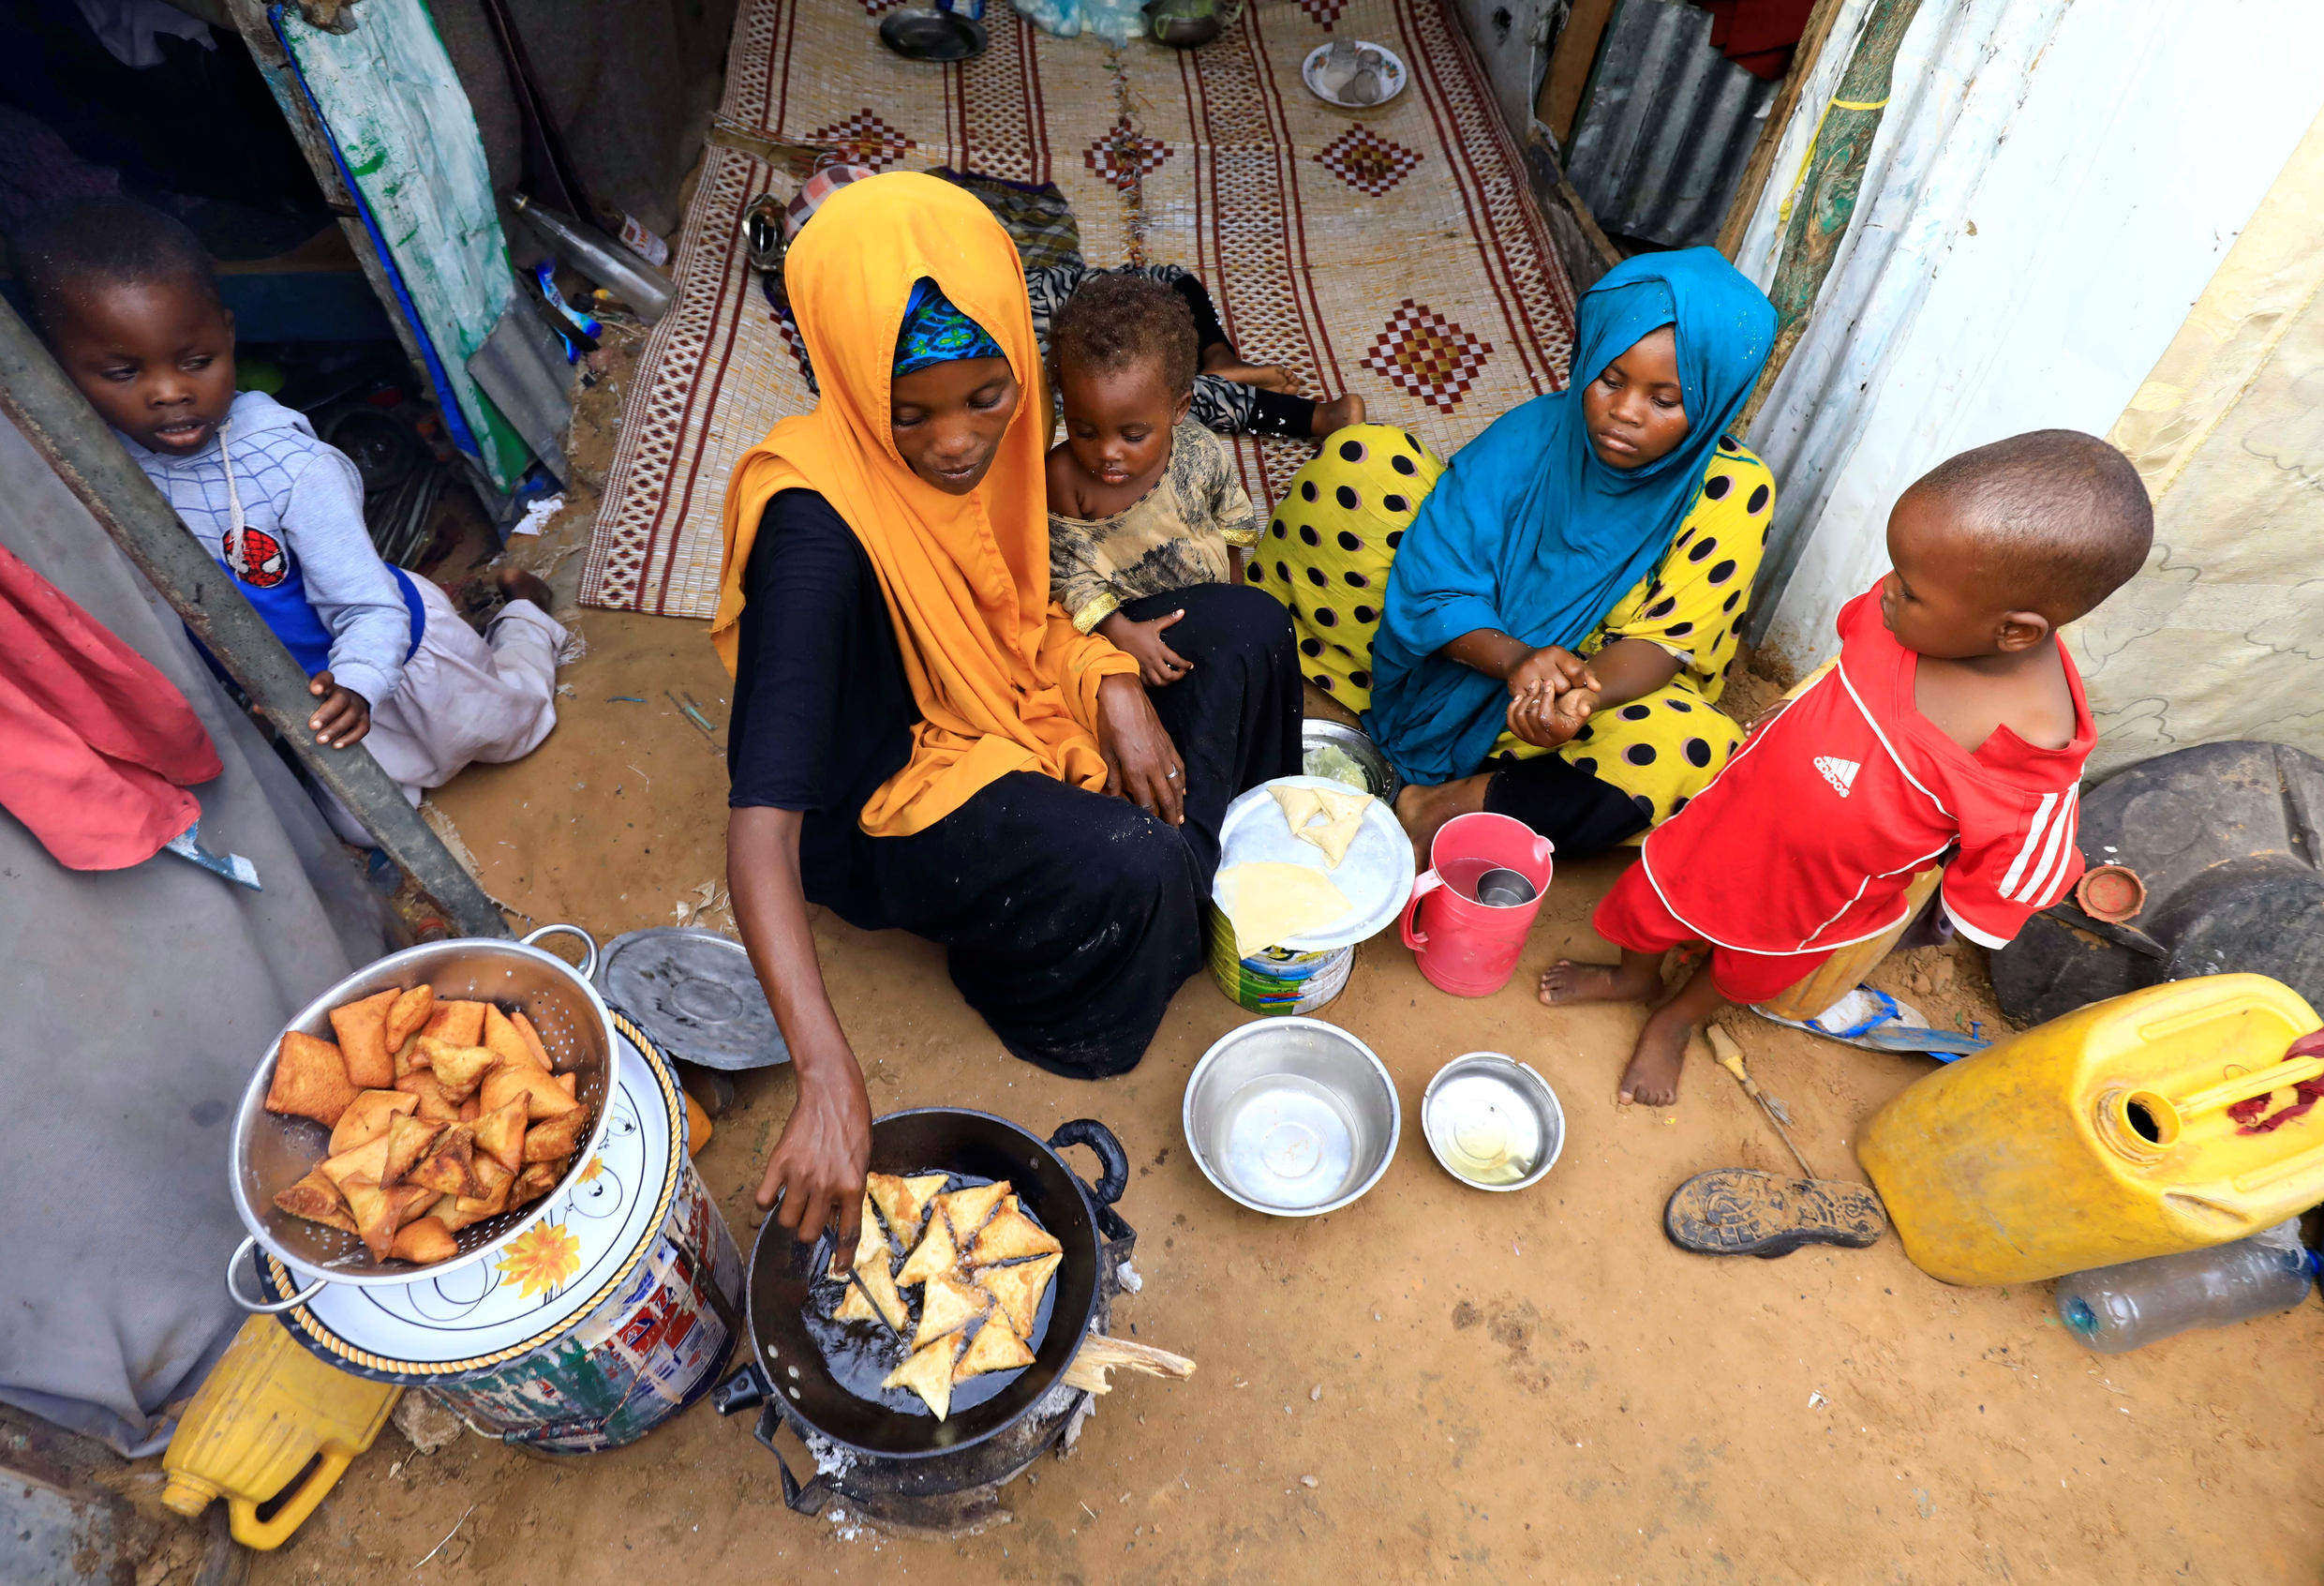 An internally displaced Somali woman and her children prepare their Iftar meal during the month of Ramadan at the Shabelle makeshift camp in Hodan district of Mogadishu, Somalia April 24, 2020.